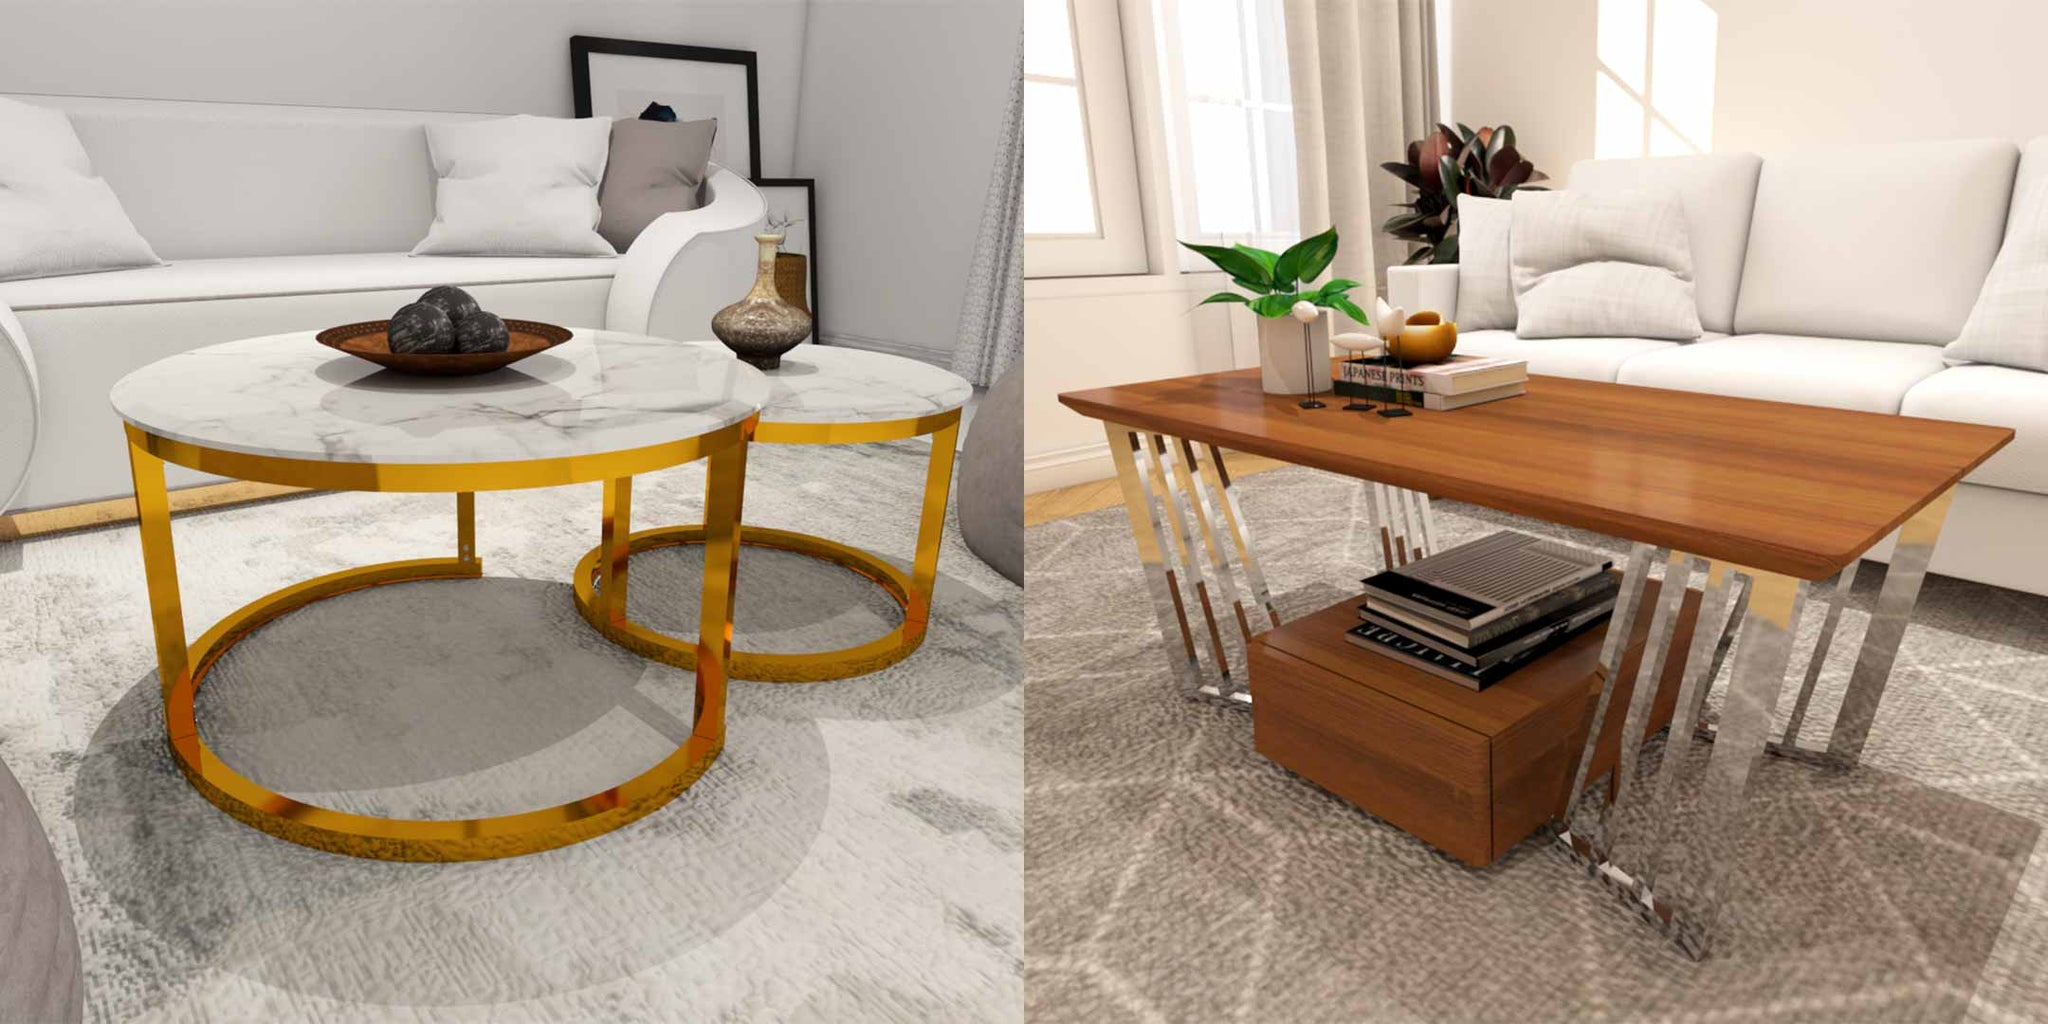 The Centrepiece that Keeps Everything Together - Coffee Table